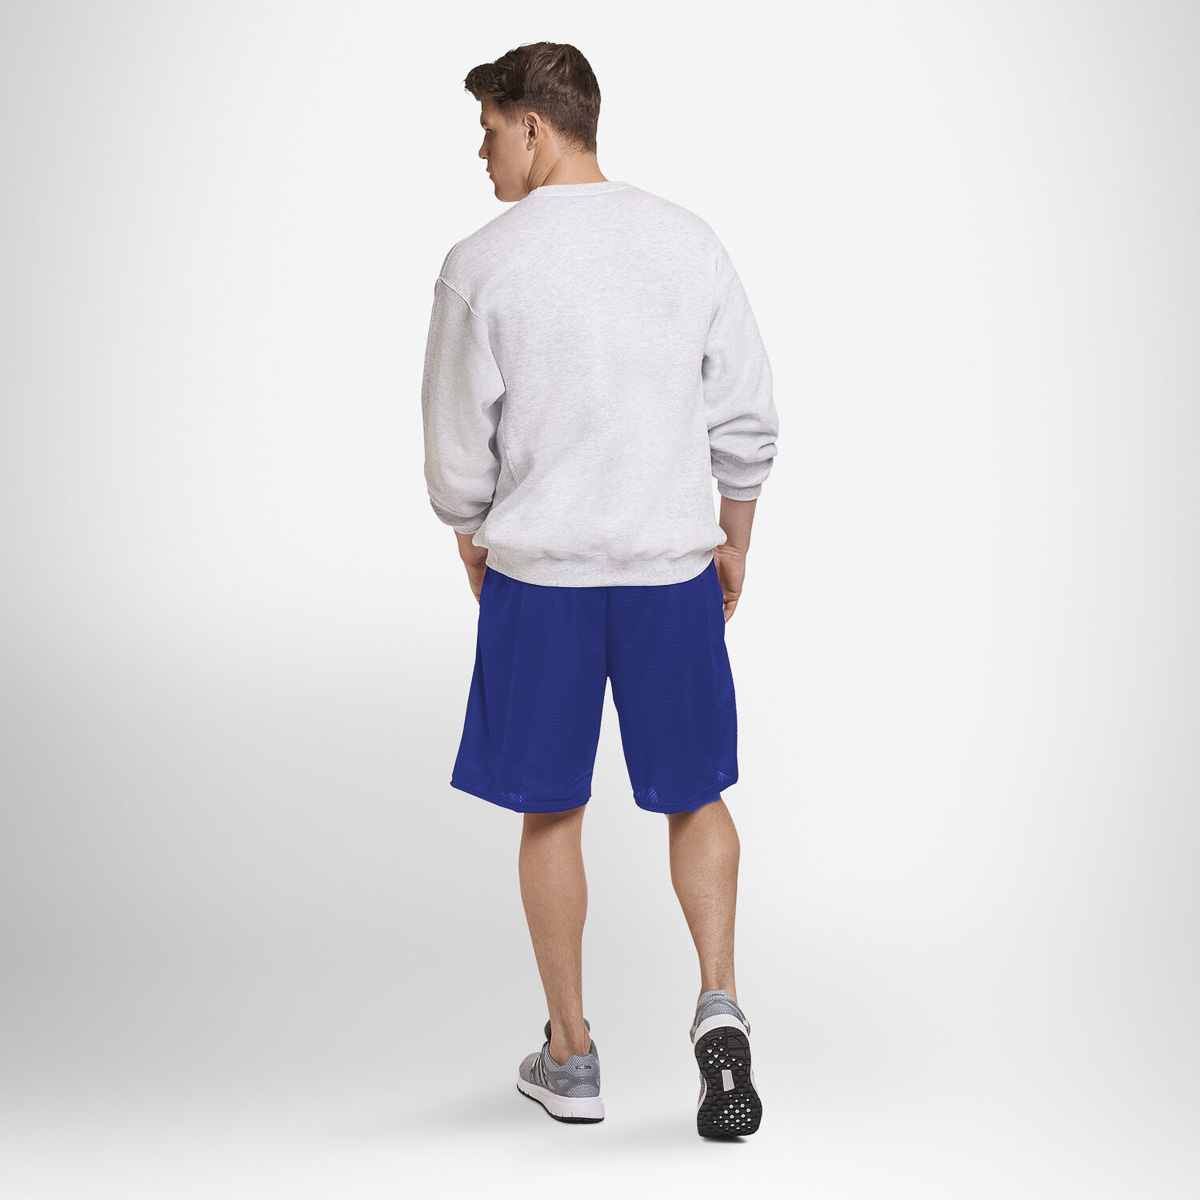 thumbnail 18 - Russell-Athletic-Mens-Shorts-With-Pockets-Mesh-Moisture-Wicking-Gym-Activewear